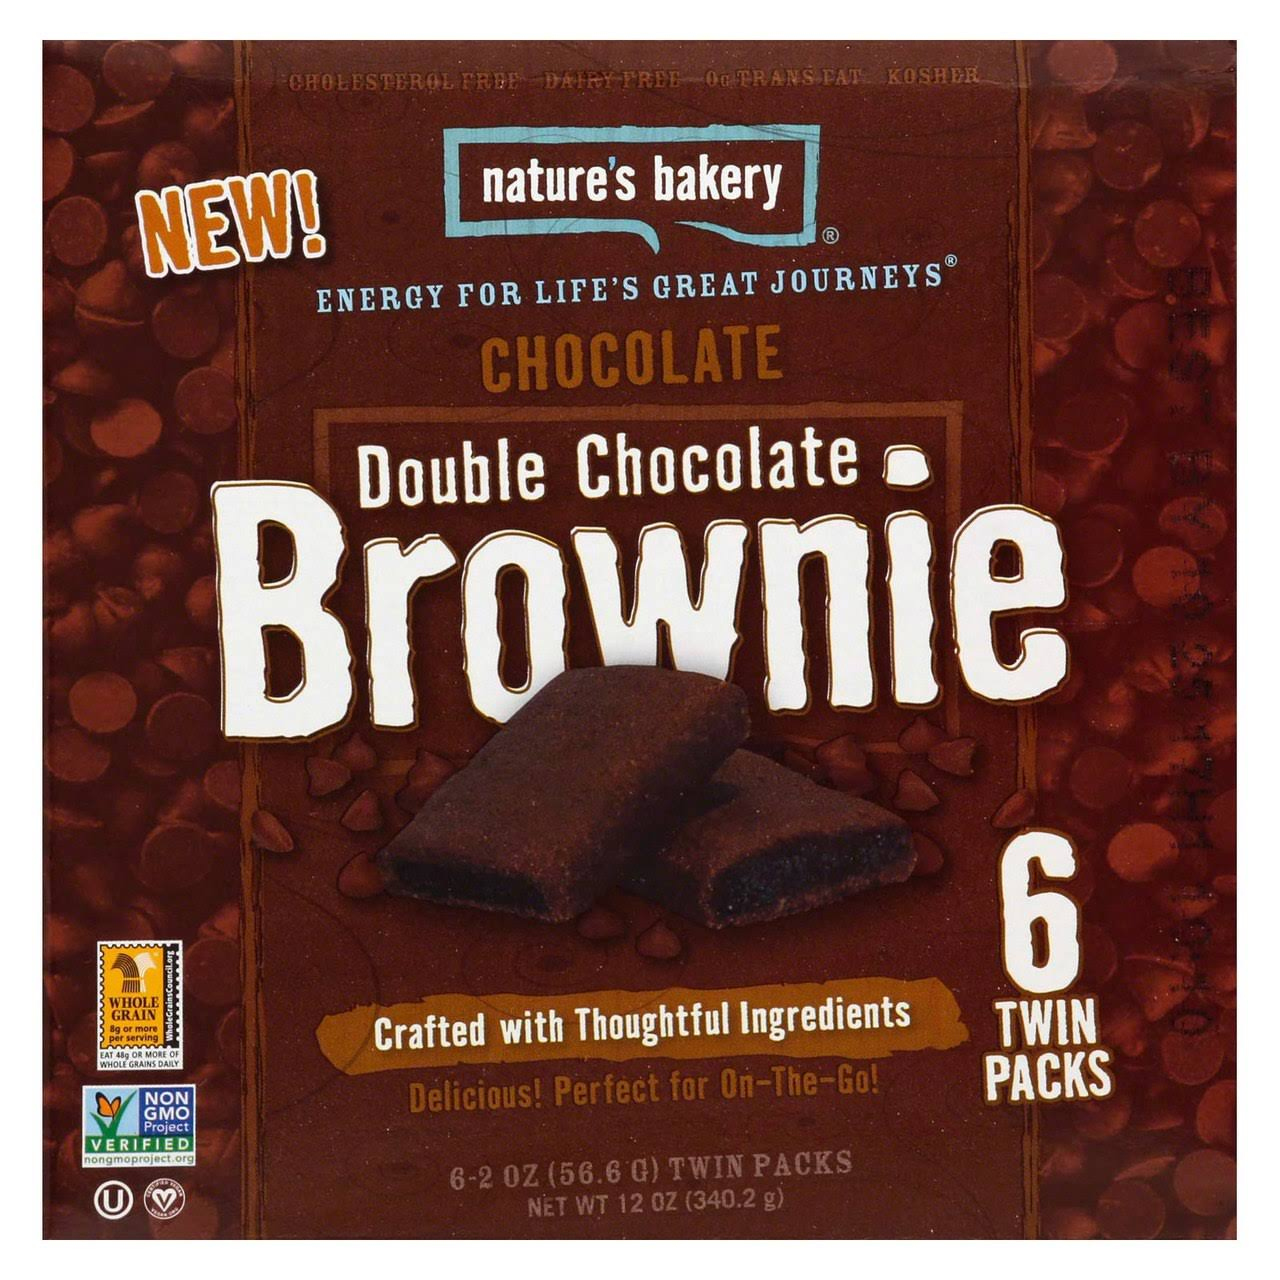 Nature's Bakery Brownie - Double Chocolate, 2 oz, 6ct